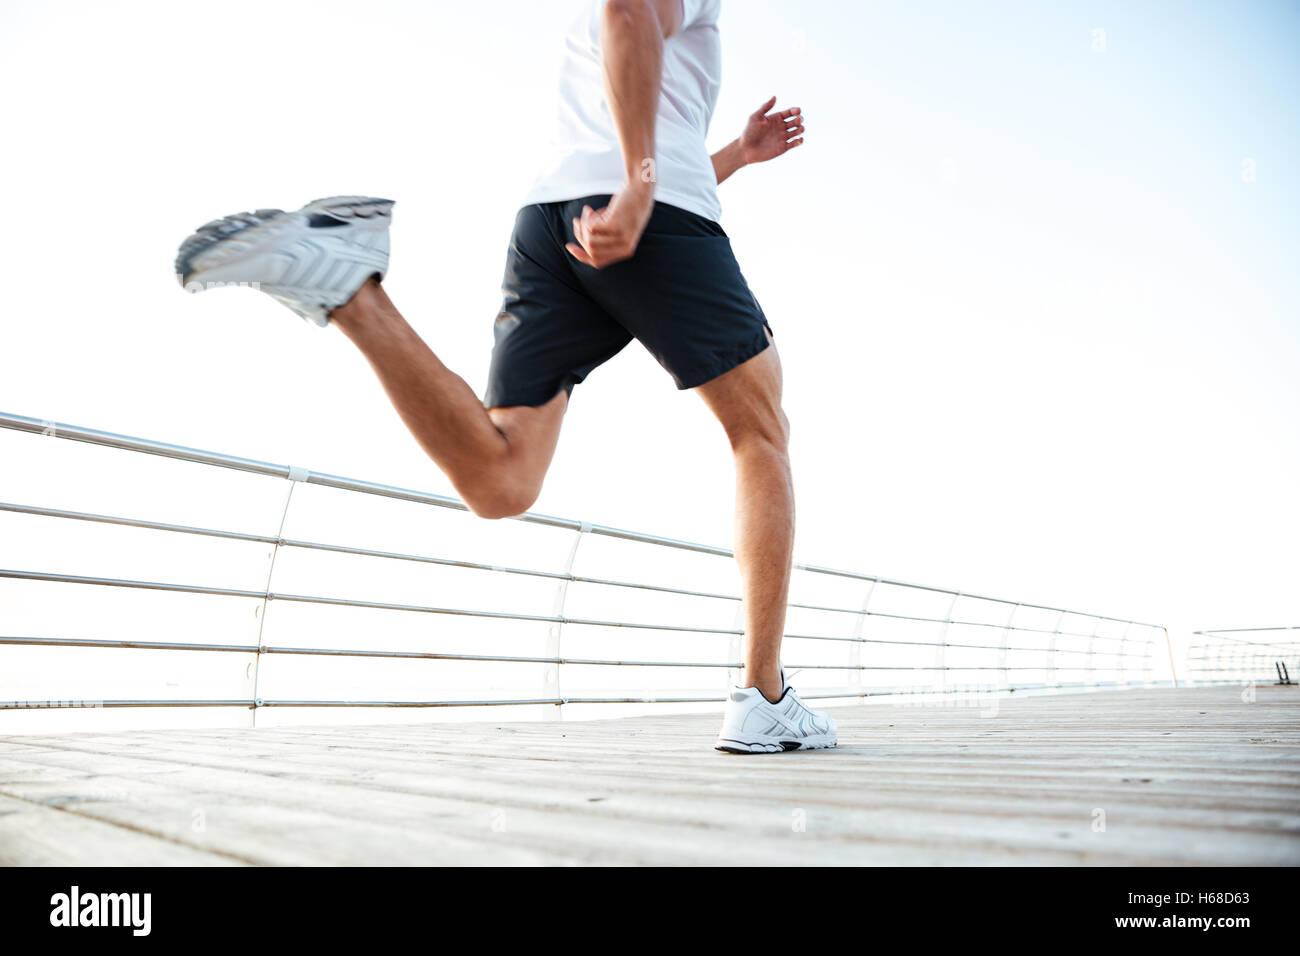 Cropped image of an athlete runner's feet and shoes running along beach pier - Stock Image